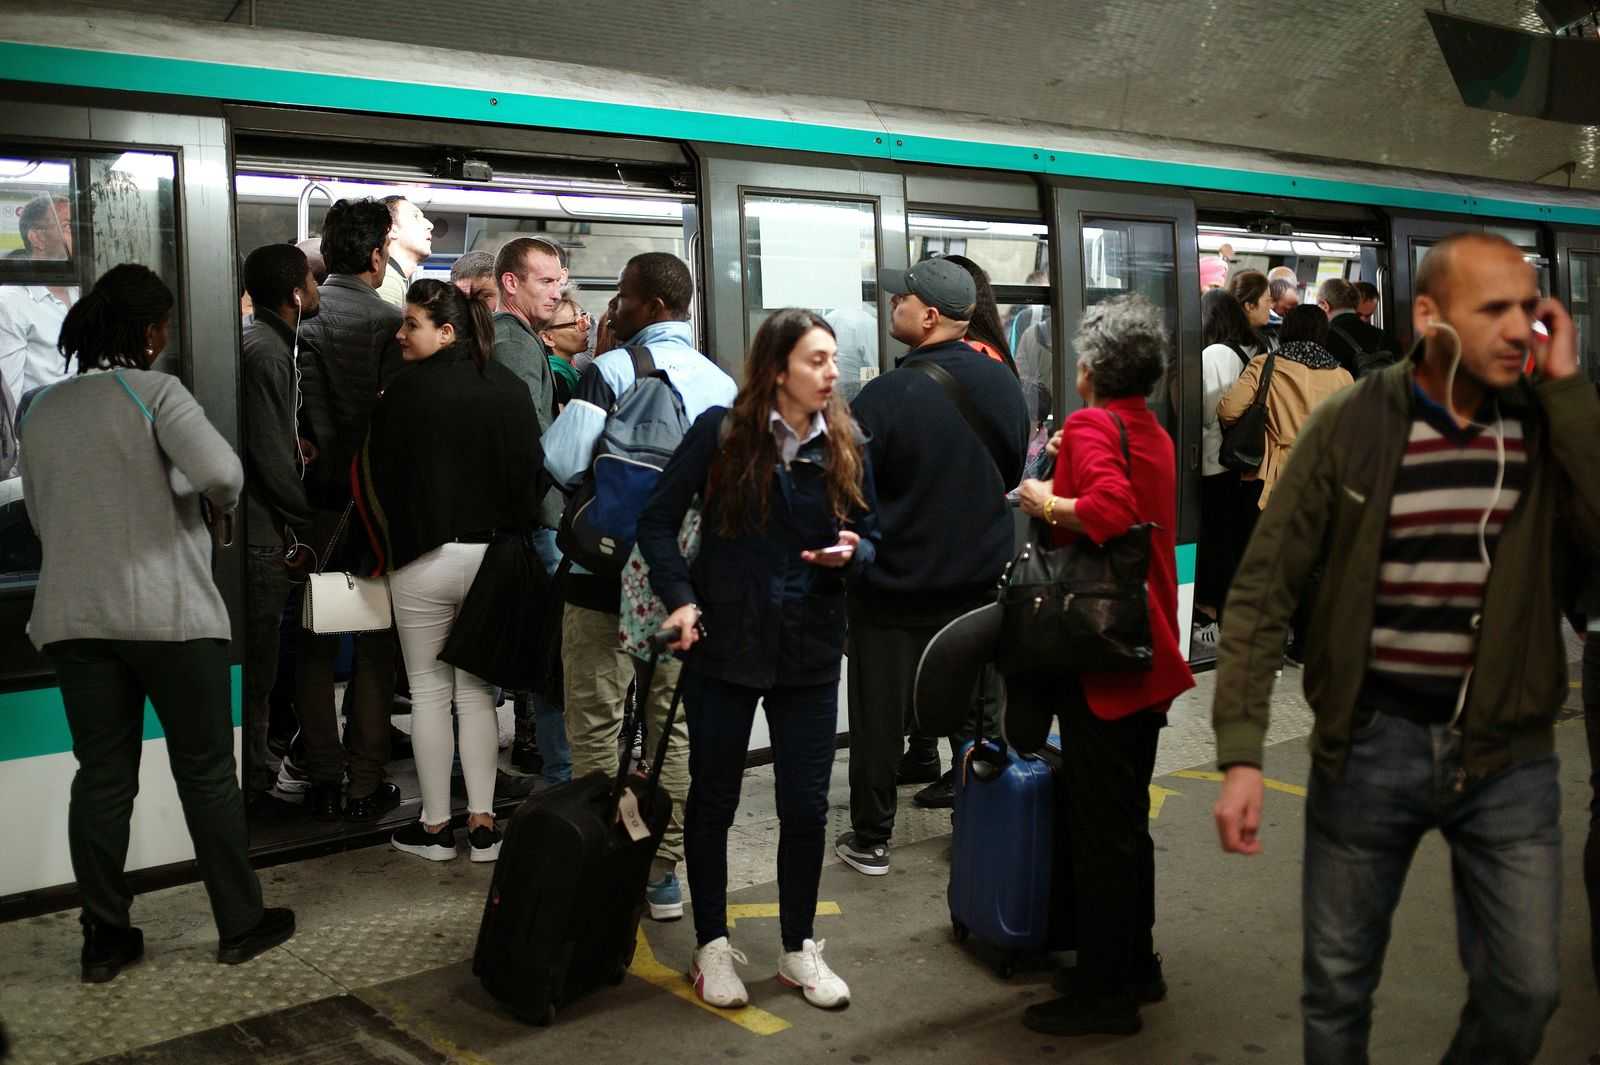 Commuters board a train, in Gare du Nord railway station, in Paris, Friday, Sept. 13, 2019. Paris metro warns over major strike, transport chaos Friday. (AP Photo/Thibault Camus)